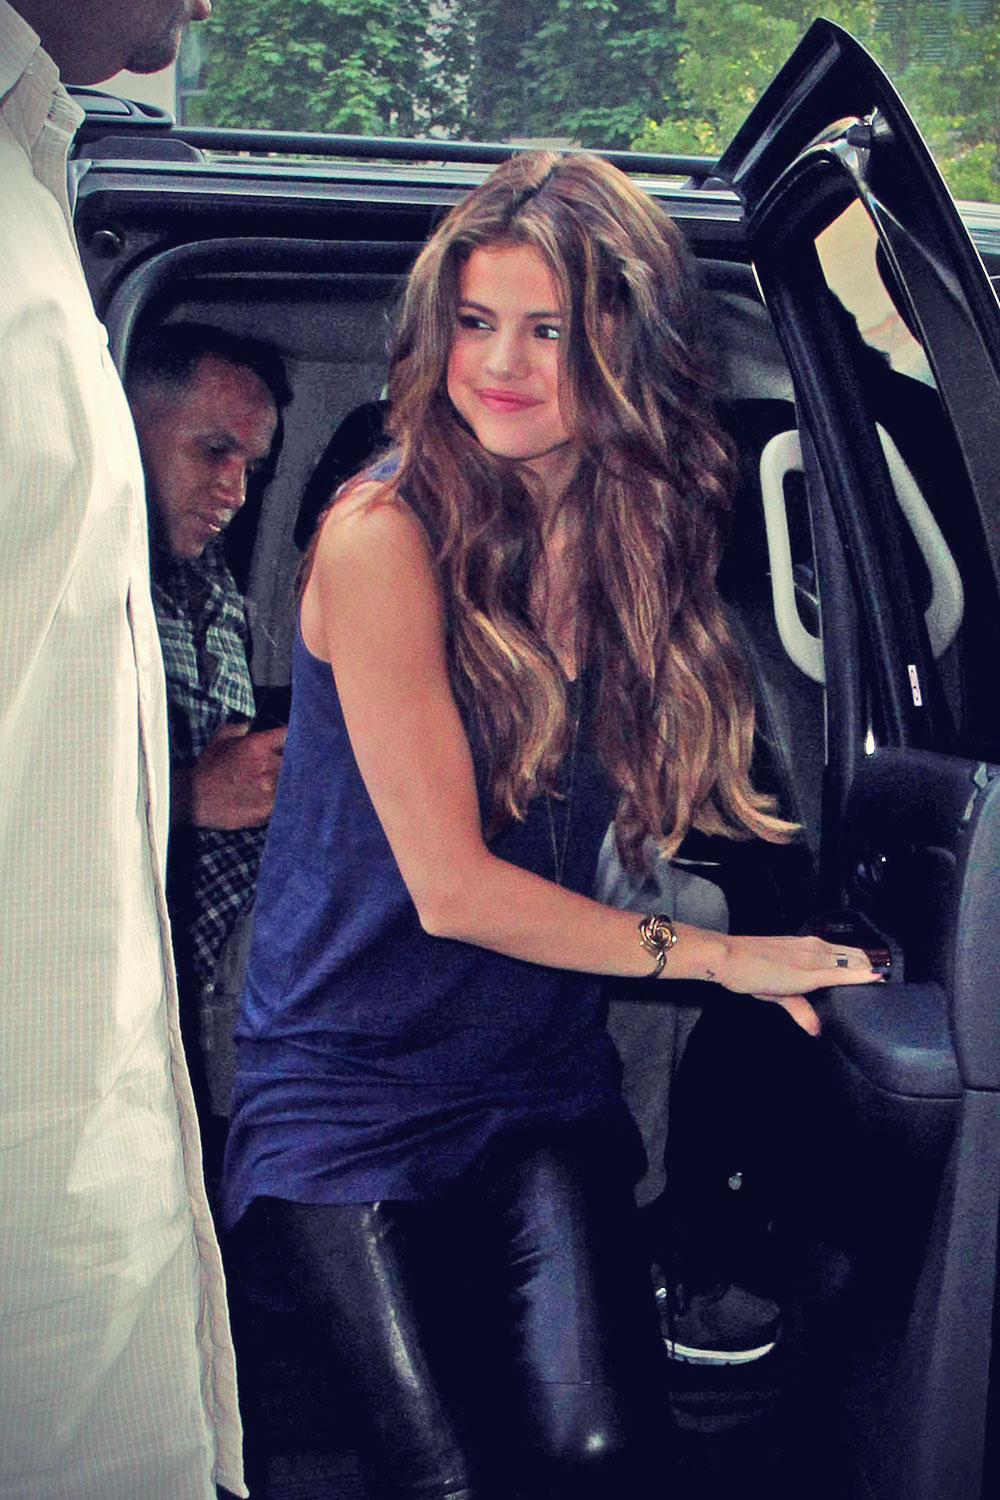 Selena Gomez at 92.5 radio station